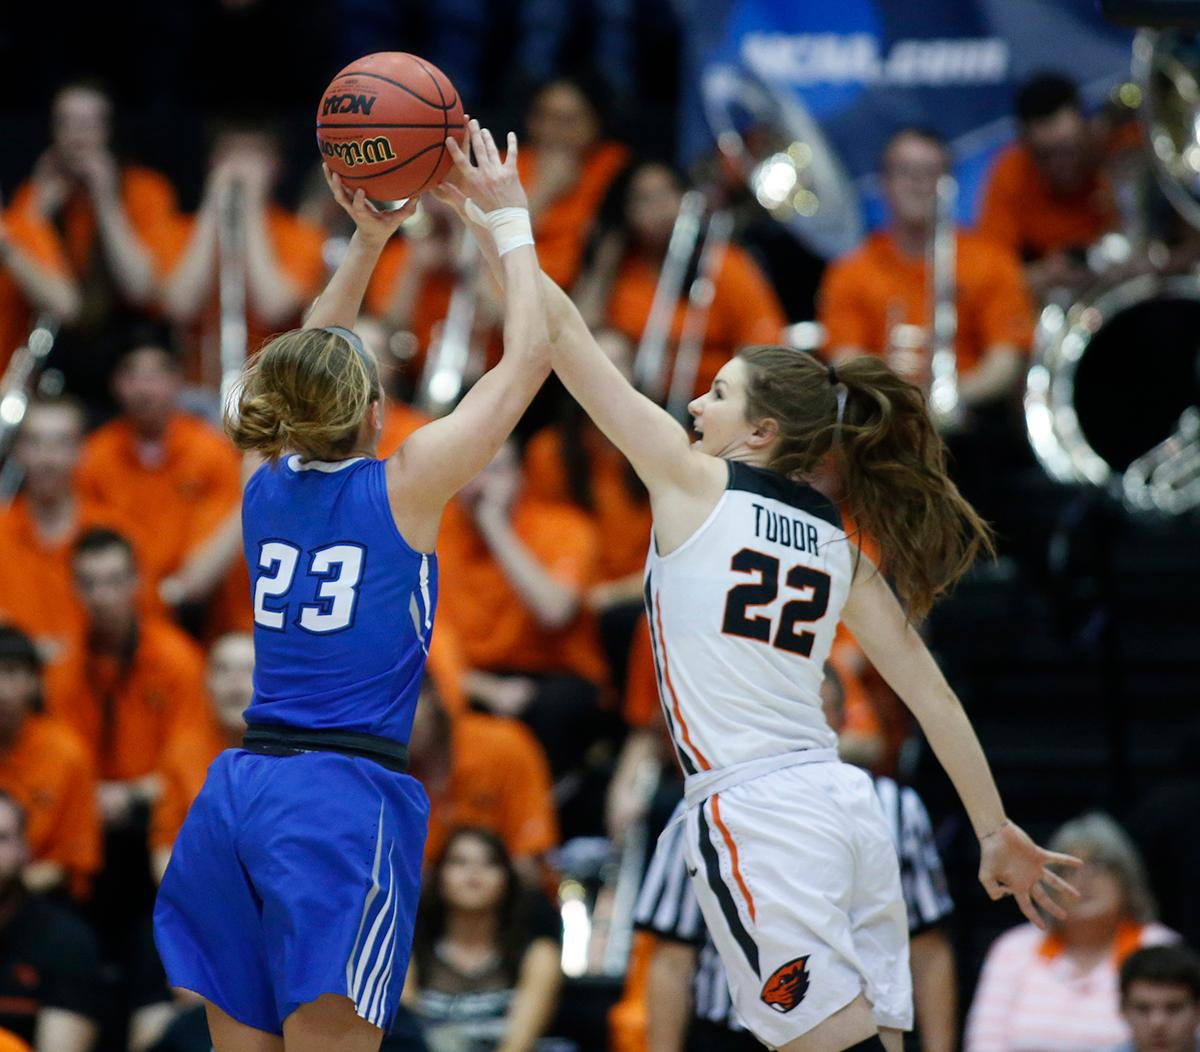 Creighton's Marissa Janning (23) has her shot blocked by Oregon State's Kat Tudor (22) during the first half of a second-round game in the NCAA women's college basketball tournament Sunday, March 19, 2017, in Corvallis, Ore. (AP Photo/ Timothy J. Gonzalez)